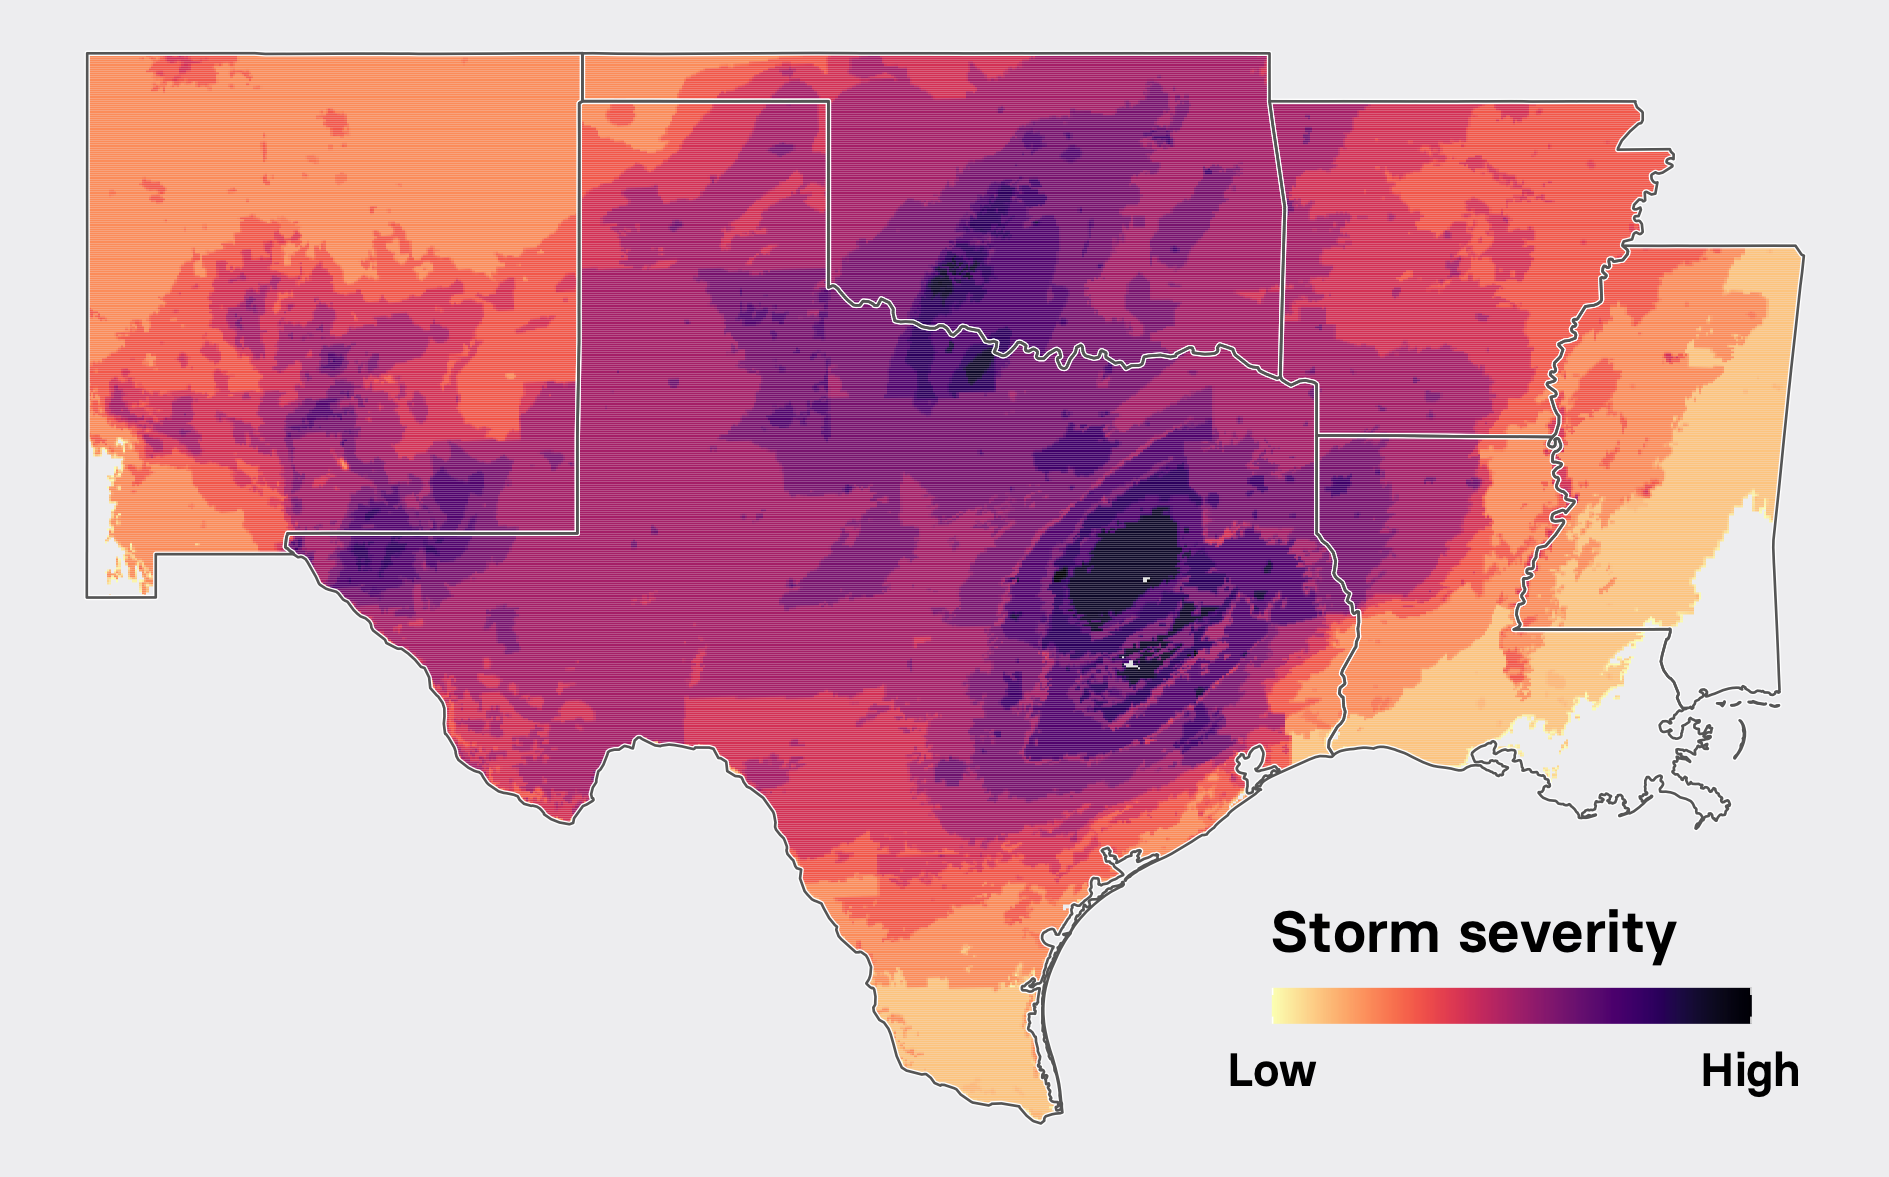 A meteorological forecast shows that a winter storm's severity affected eastern Texas and surrounding states